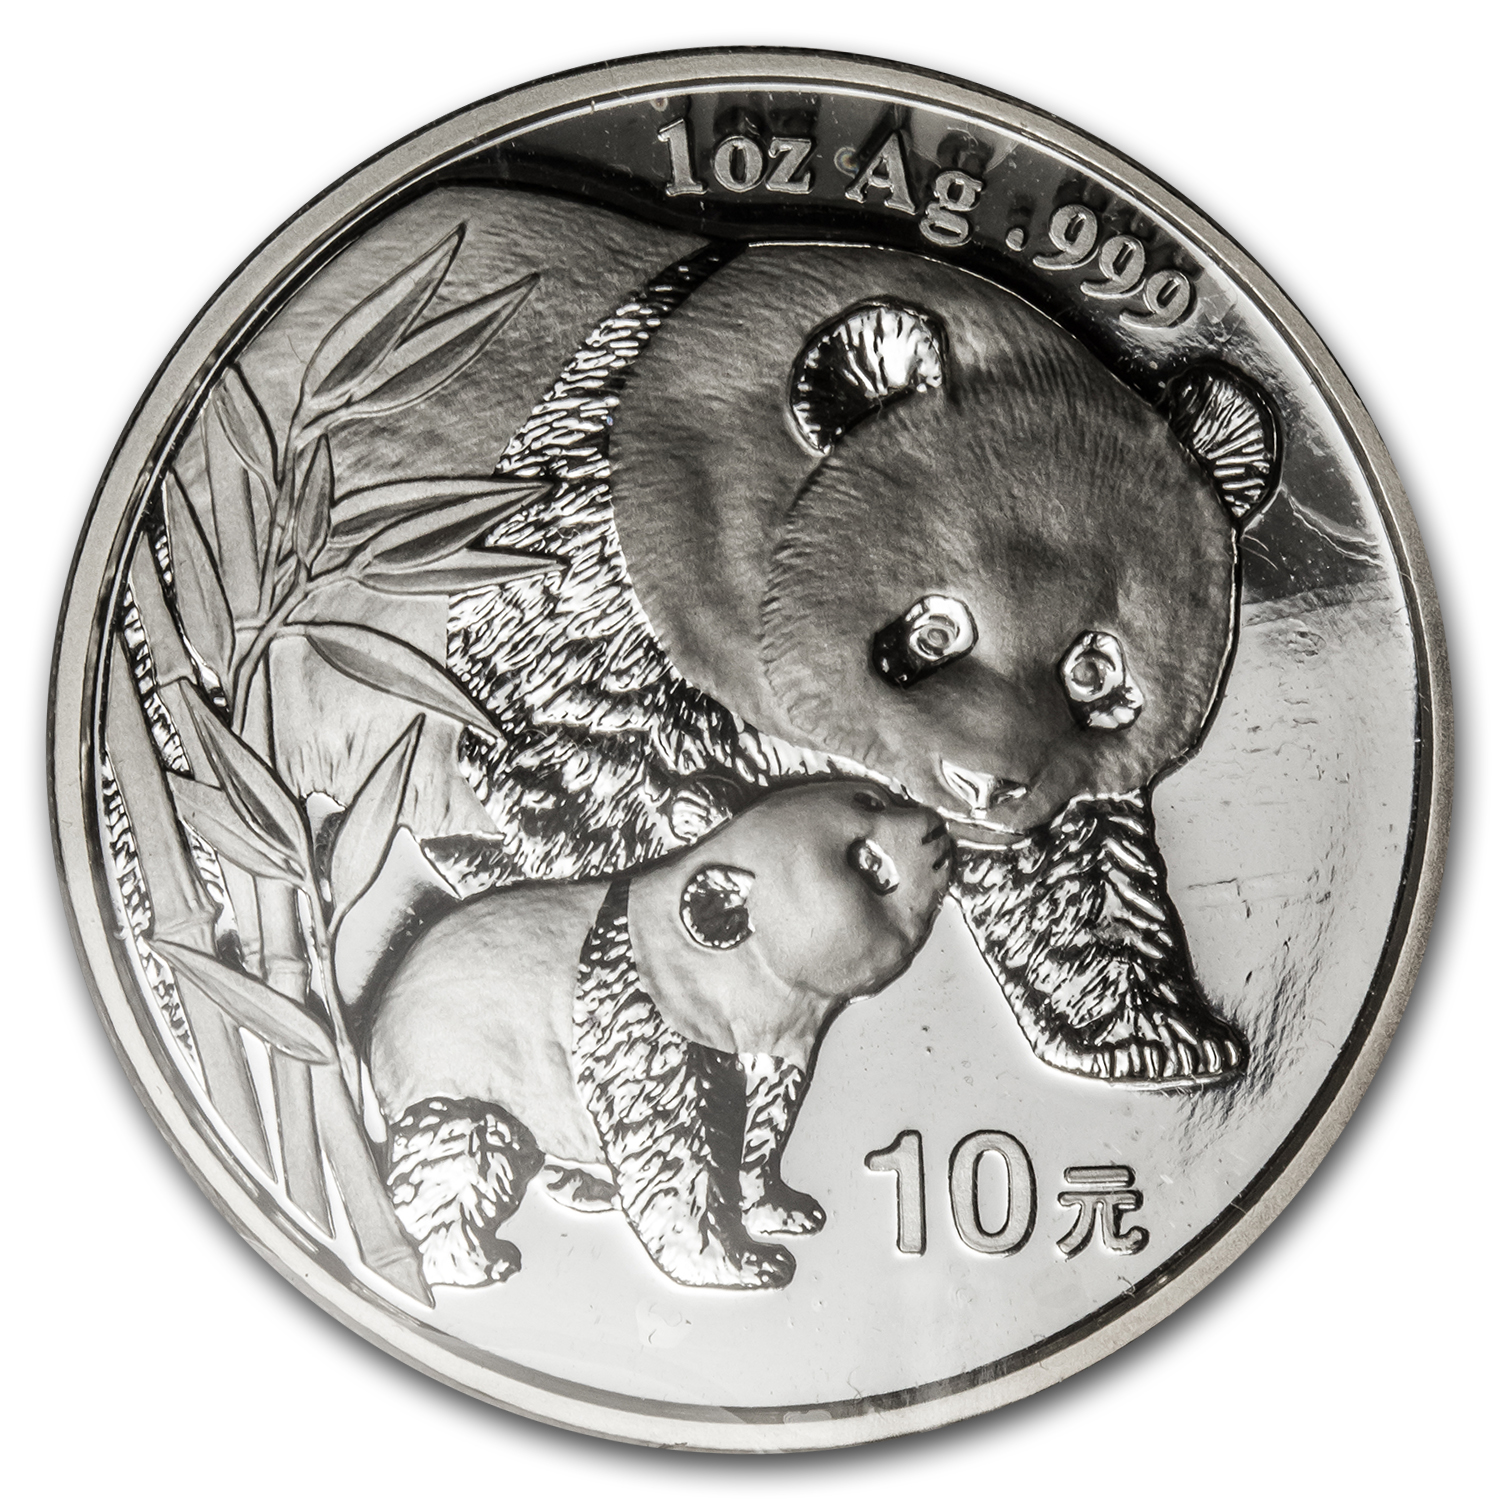 2004 China 1 oz Silver Panda BU (Sealed)